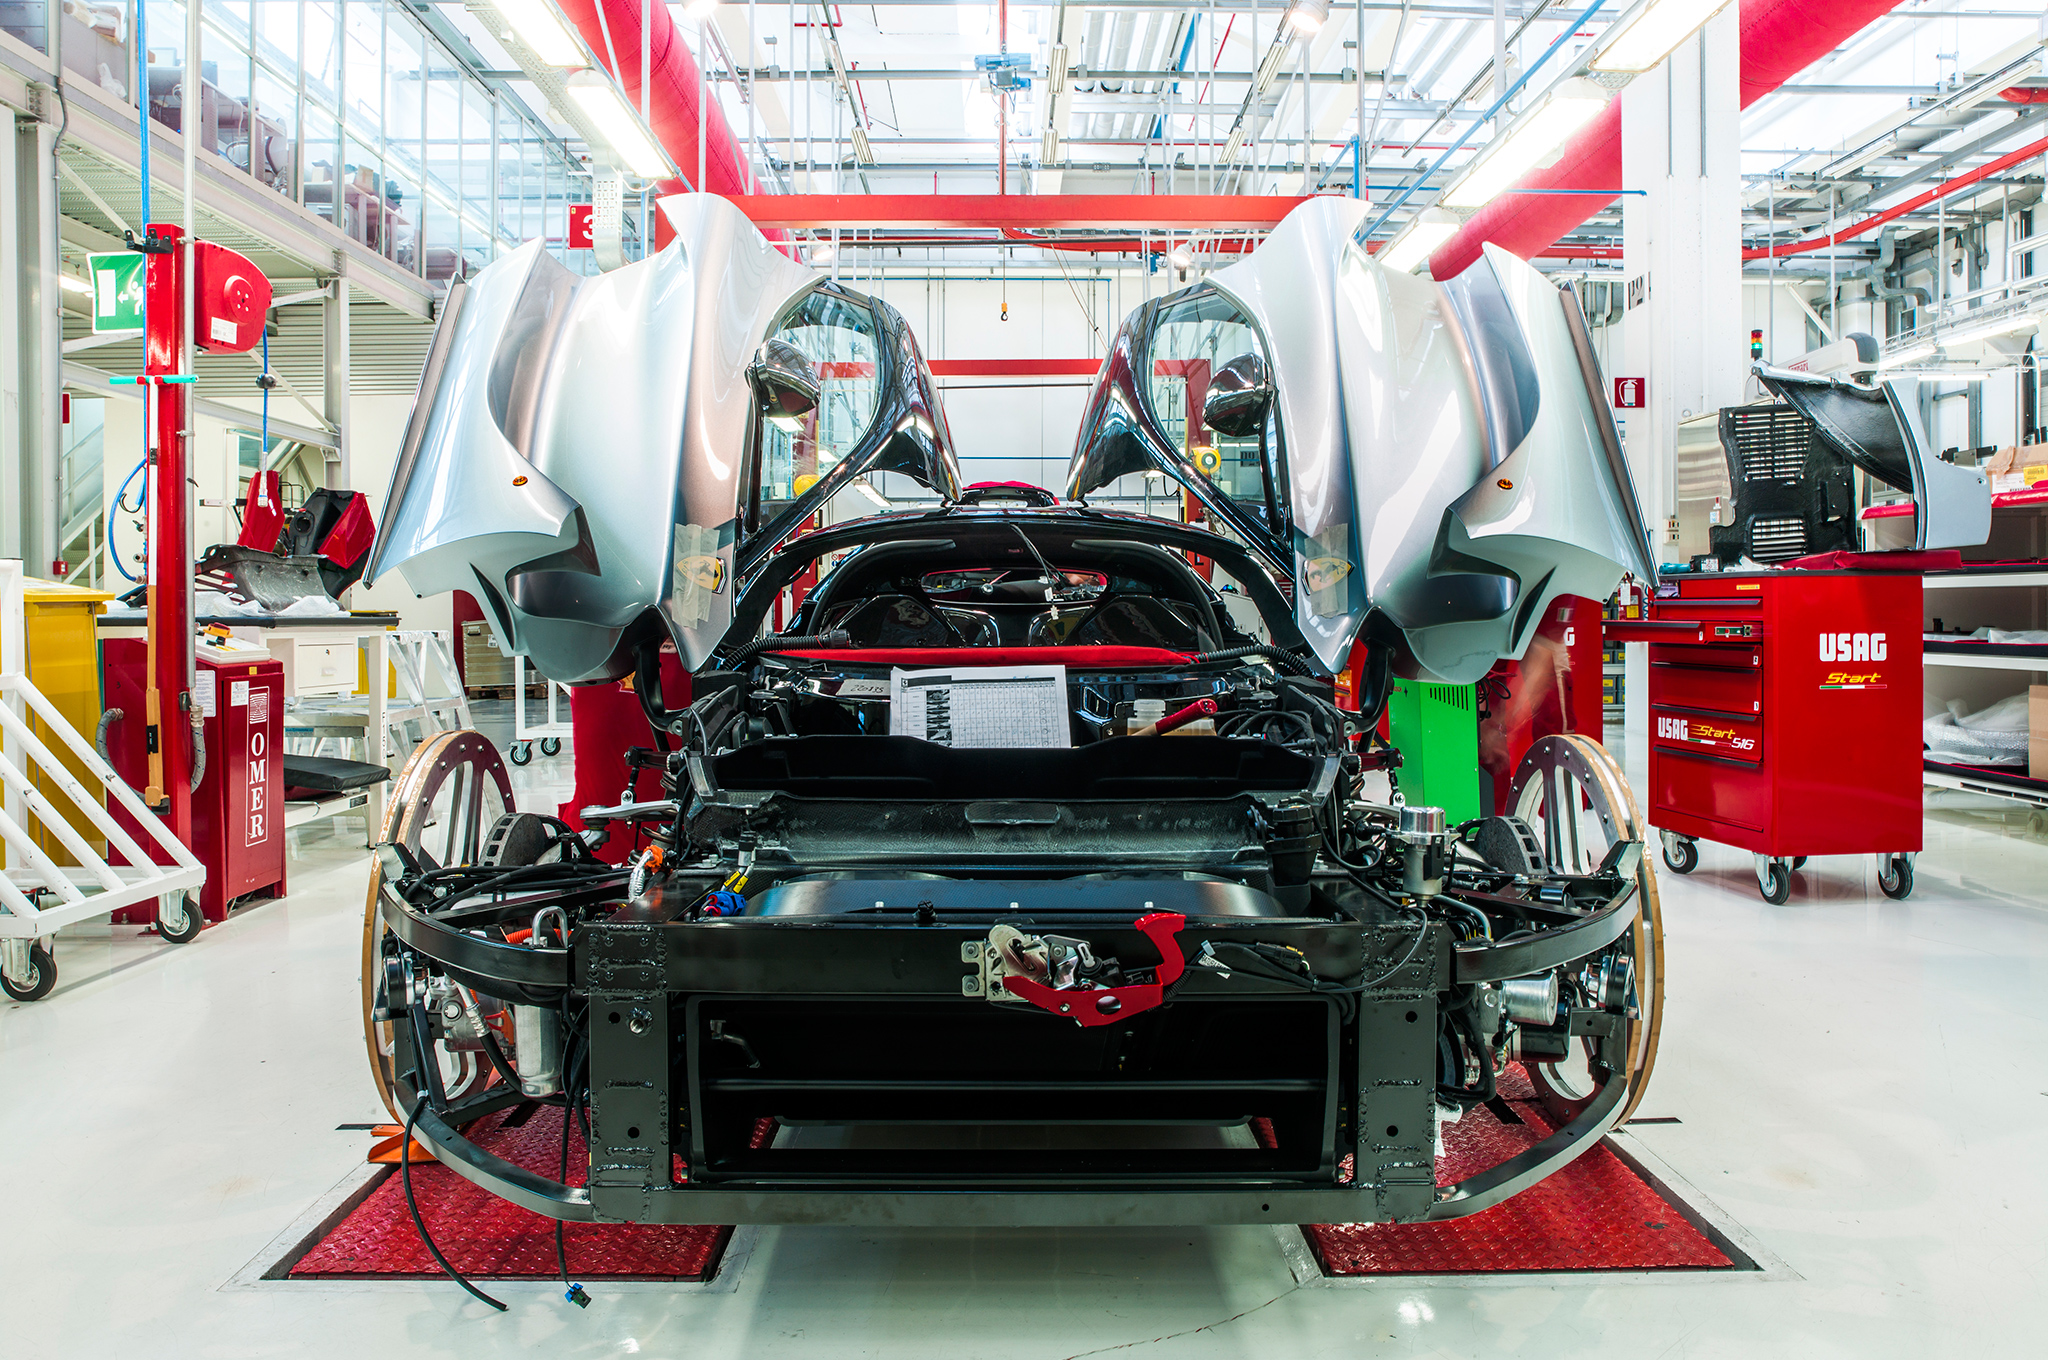 The front end of LaFerrari, before the aerodynamically optimized splitter and hood are installed.